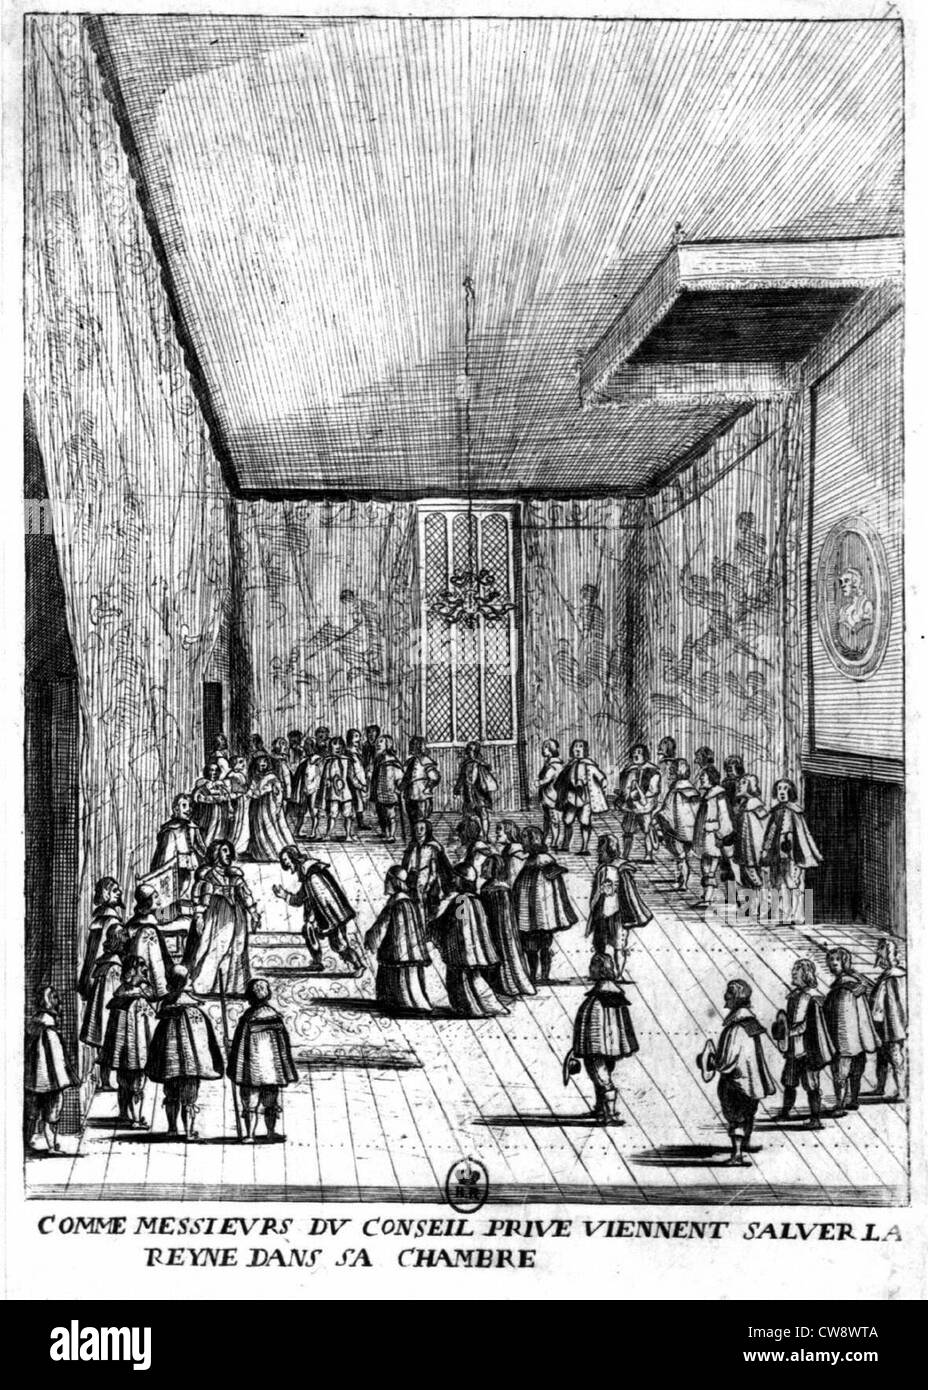 As Gentlemen private counsel come to greet Queen in her room (underLouis XIII) - Stock Image